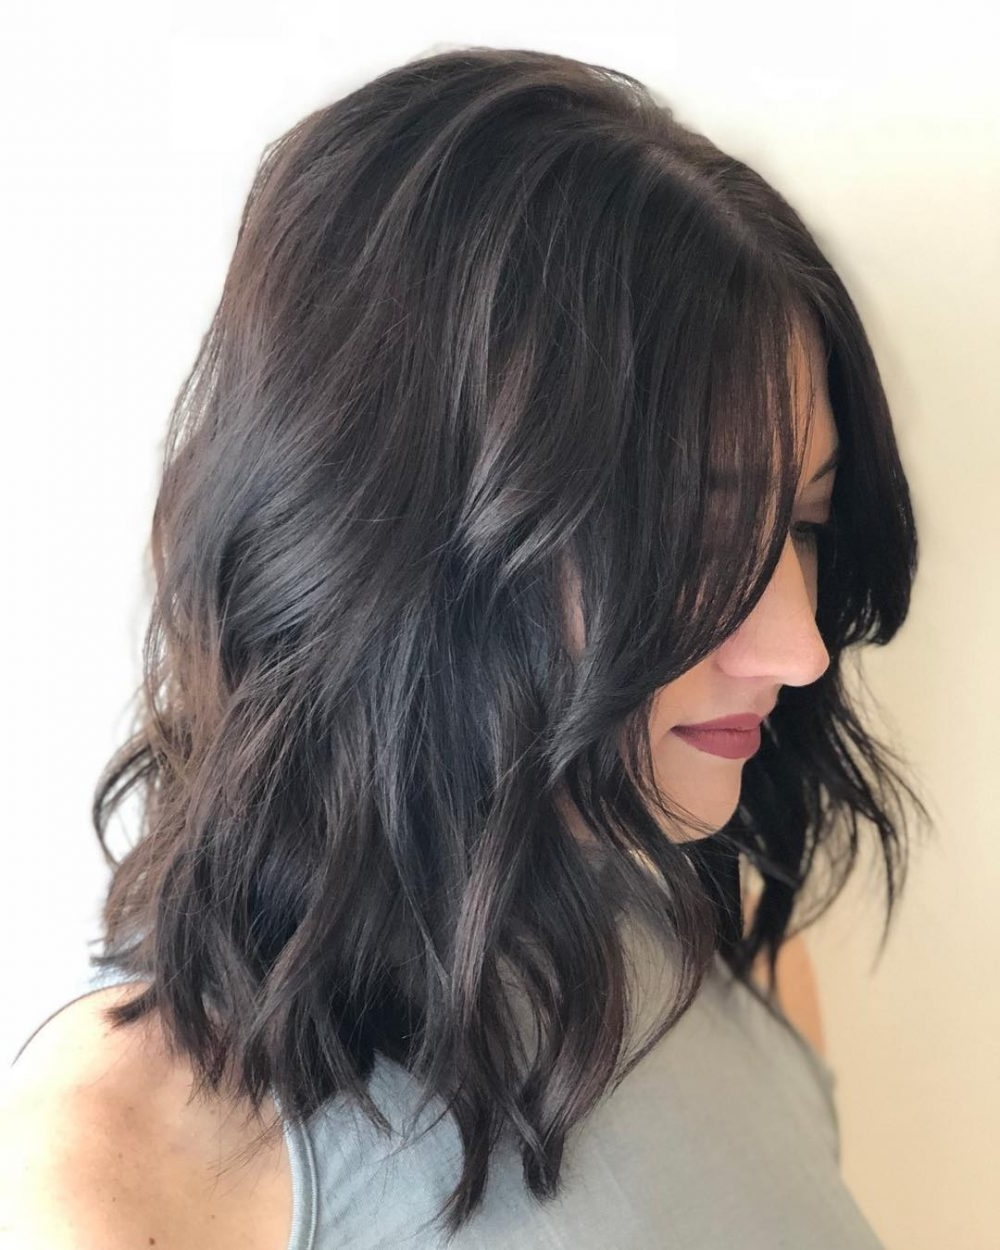 30 Best Hairstyles For Thick Hair & Trending Thick Haircuts Medium Hairstyles Thick Hair 2019